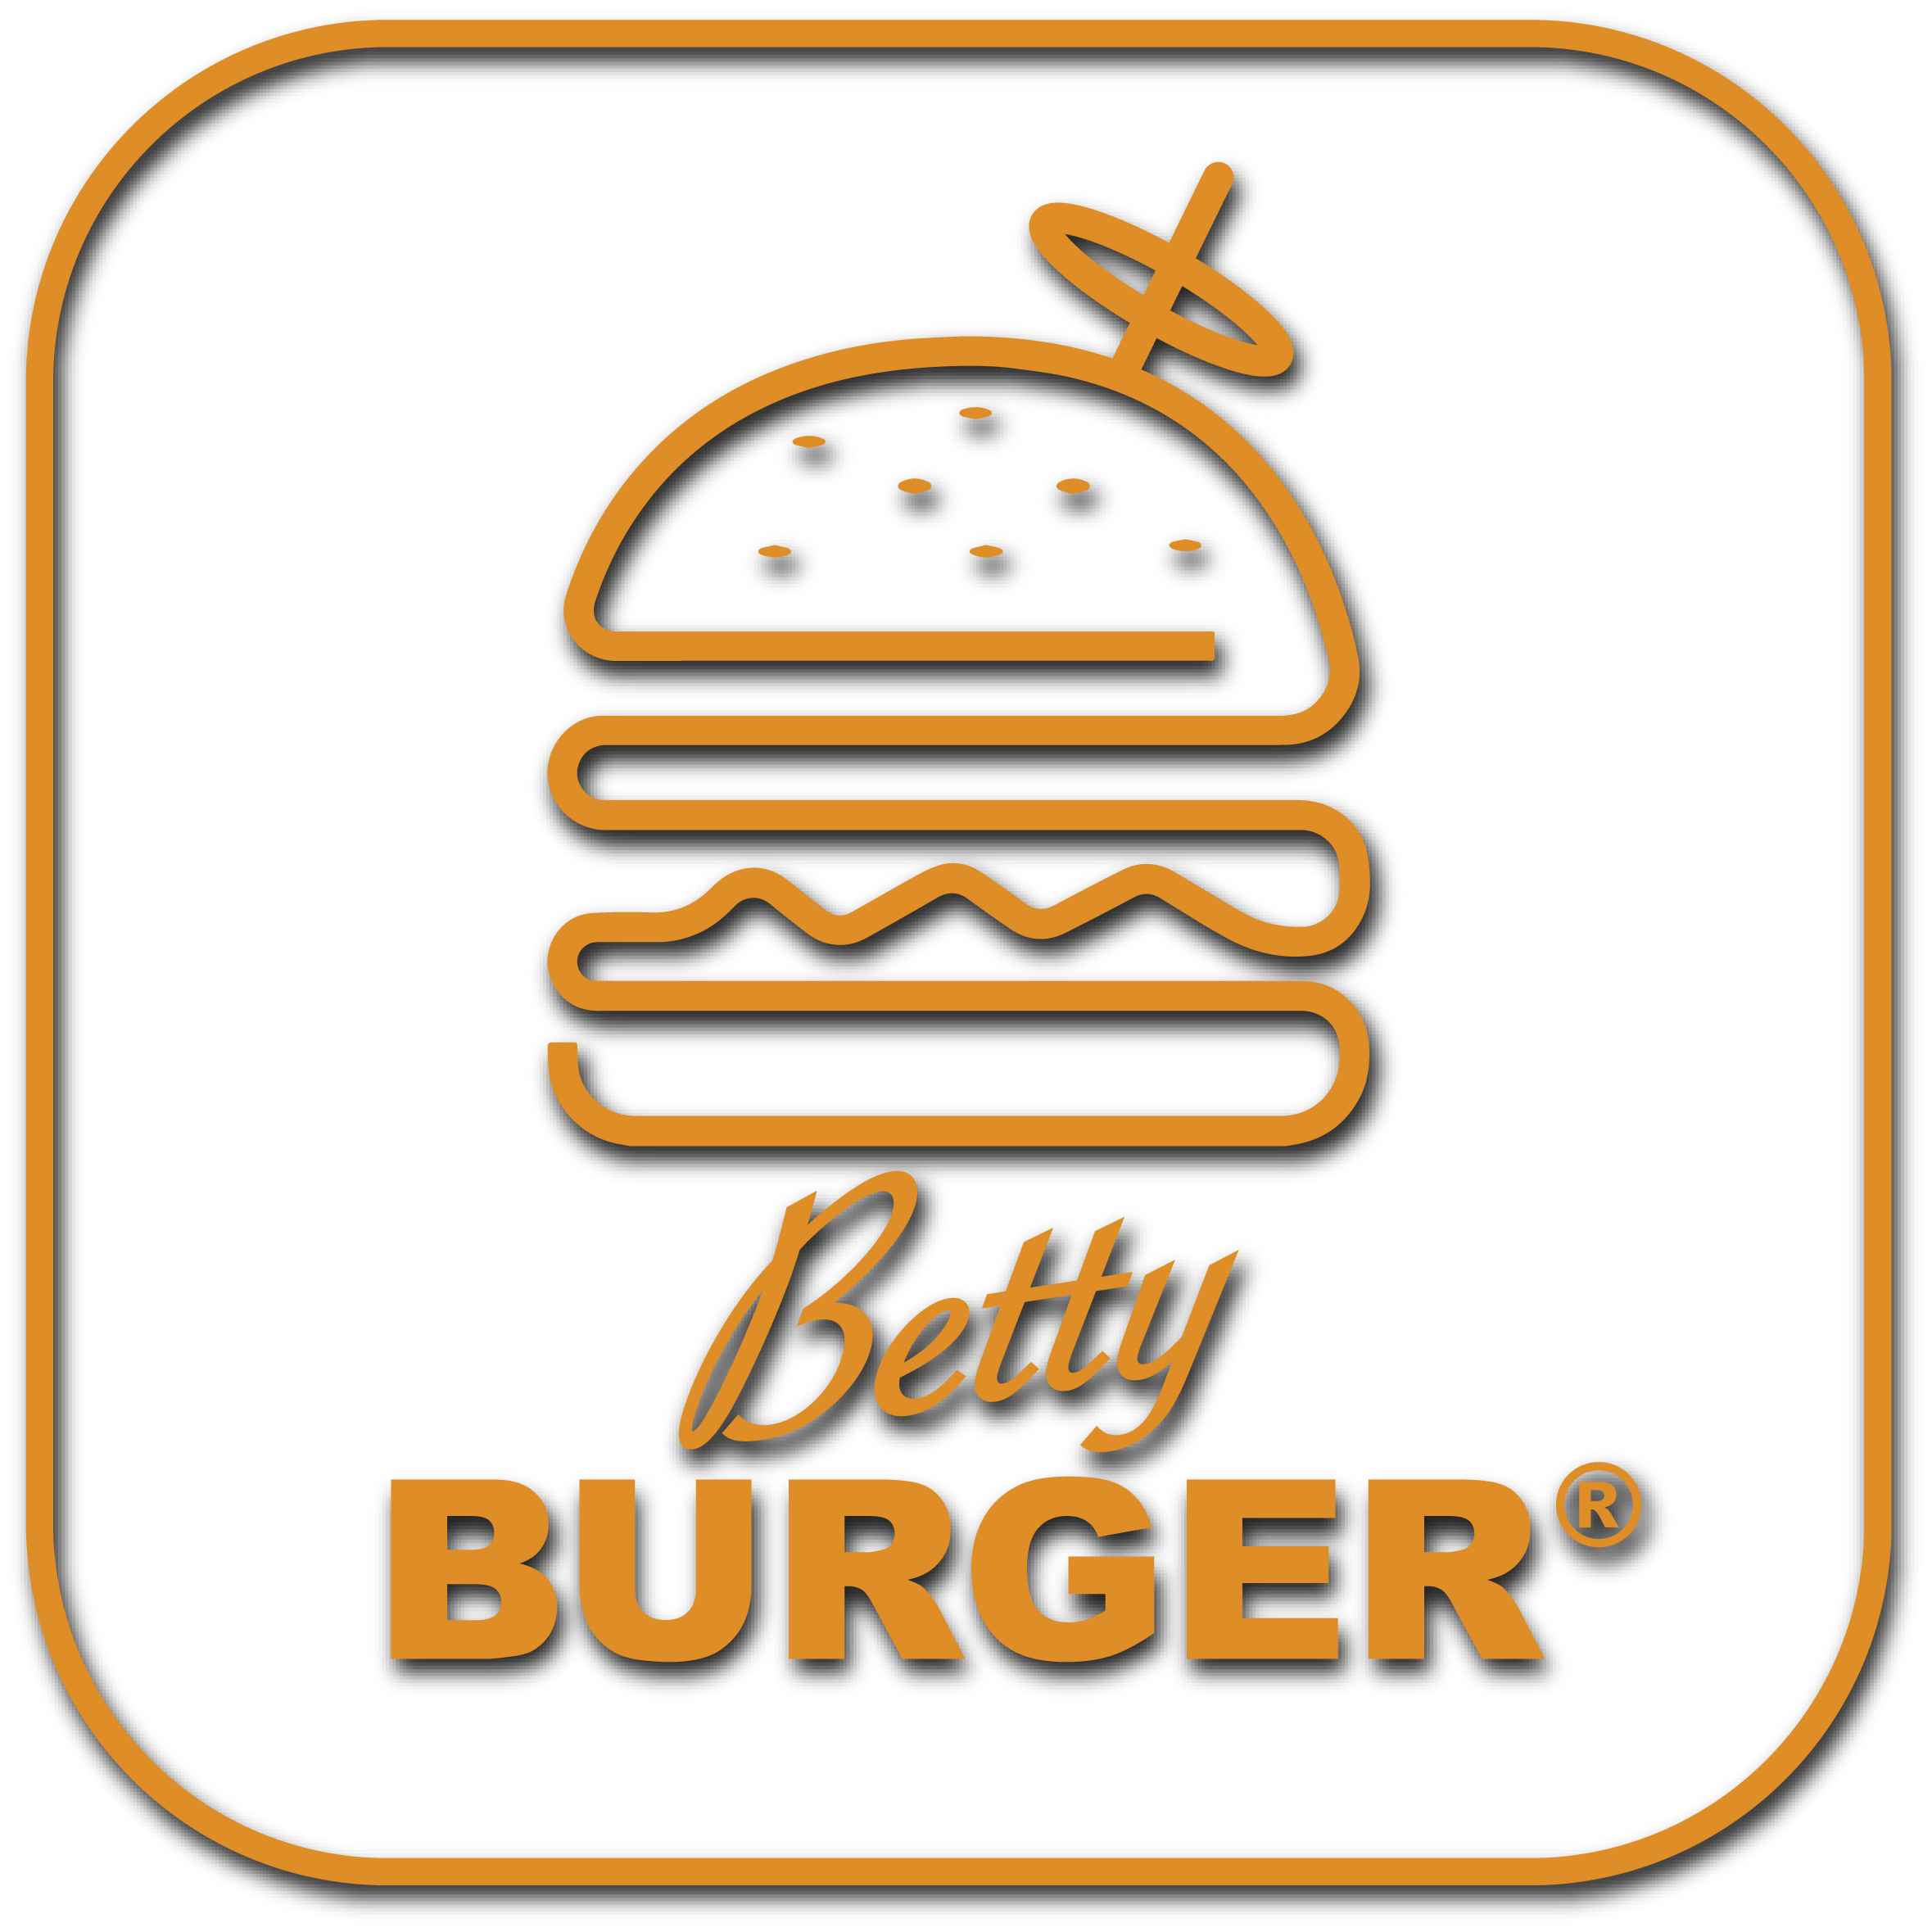 Betty Burger